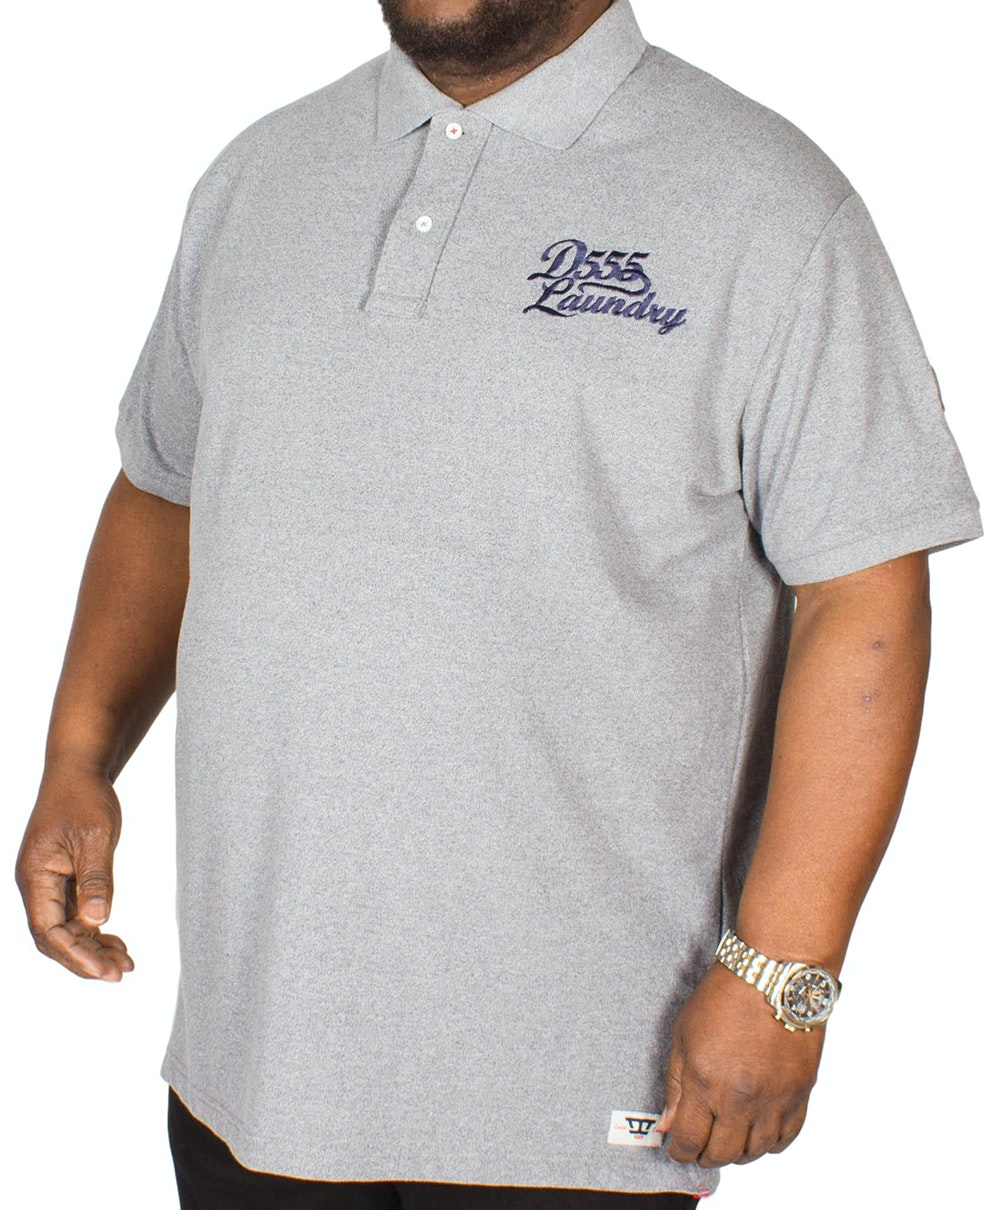 D555 Graham Embroidered Polo Shirt Grey